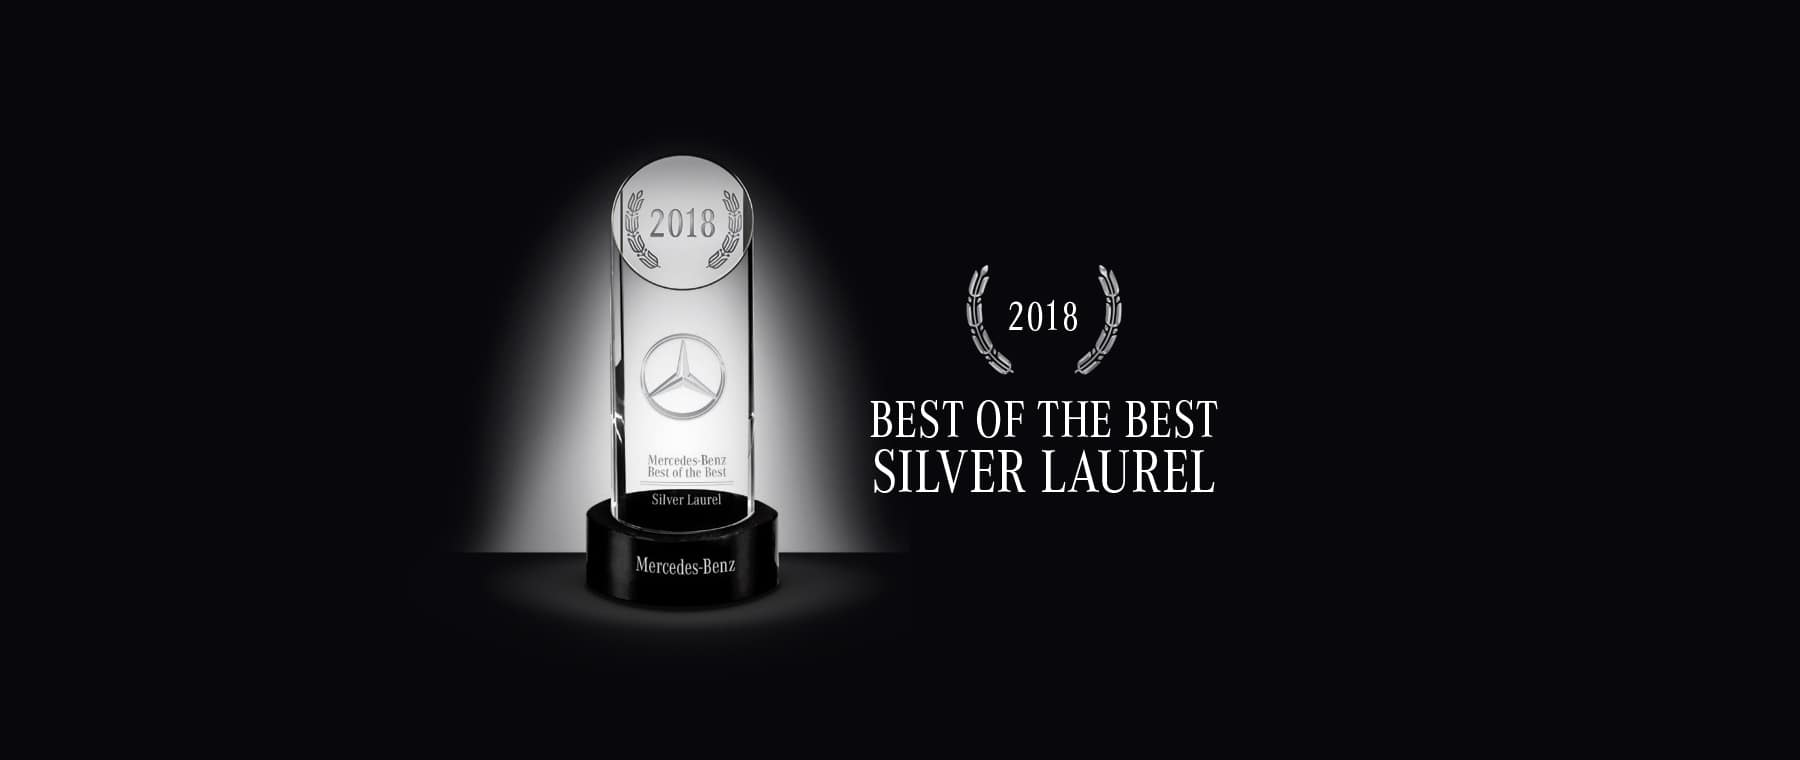 Silver Laurel Award